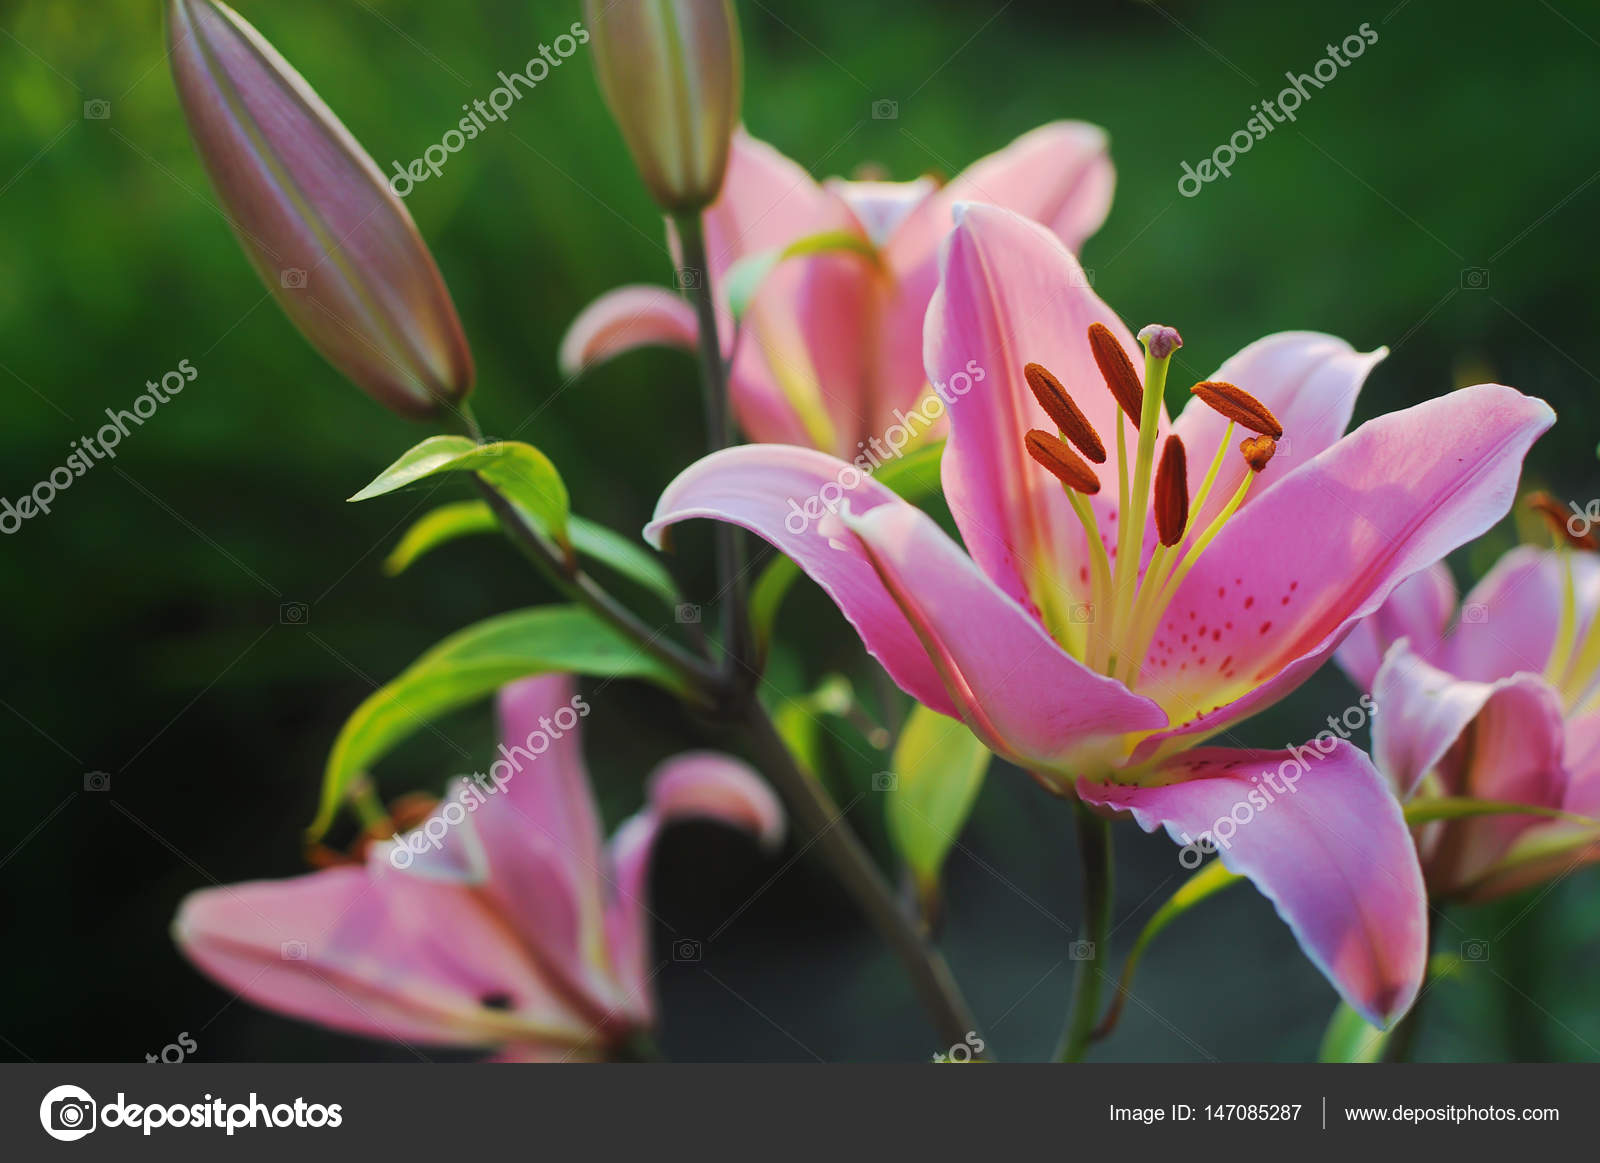 Huge pink lily flower stock photo shinedawn 147085287 huge pink lily flower stock photo mightylinksfo